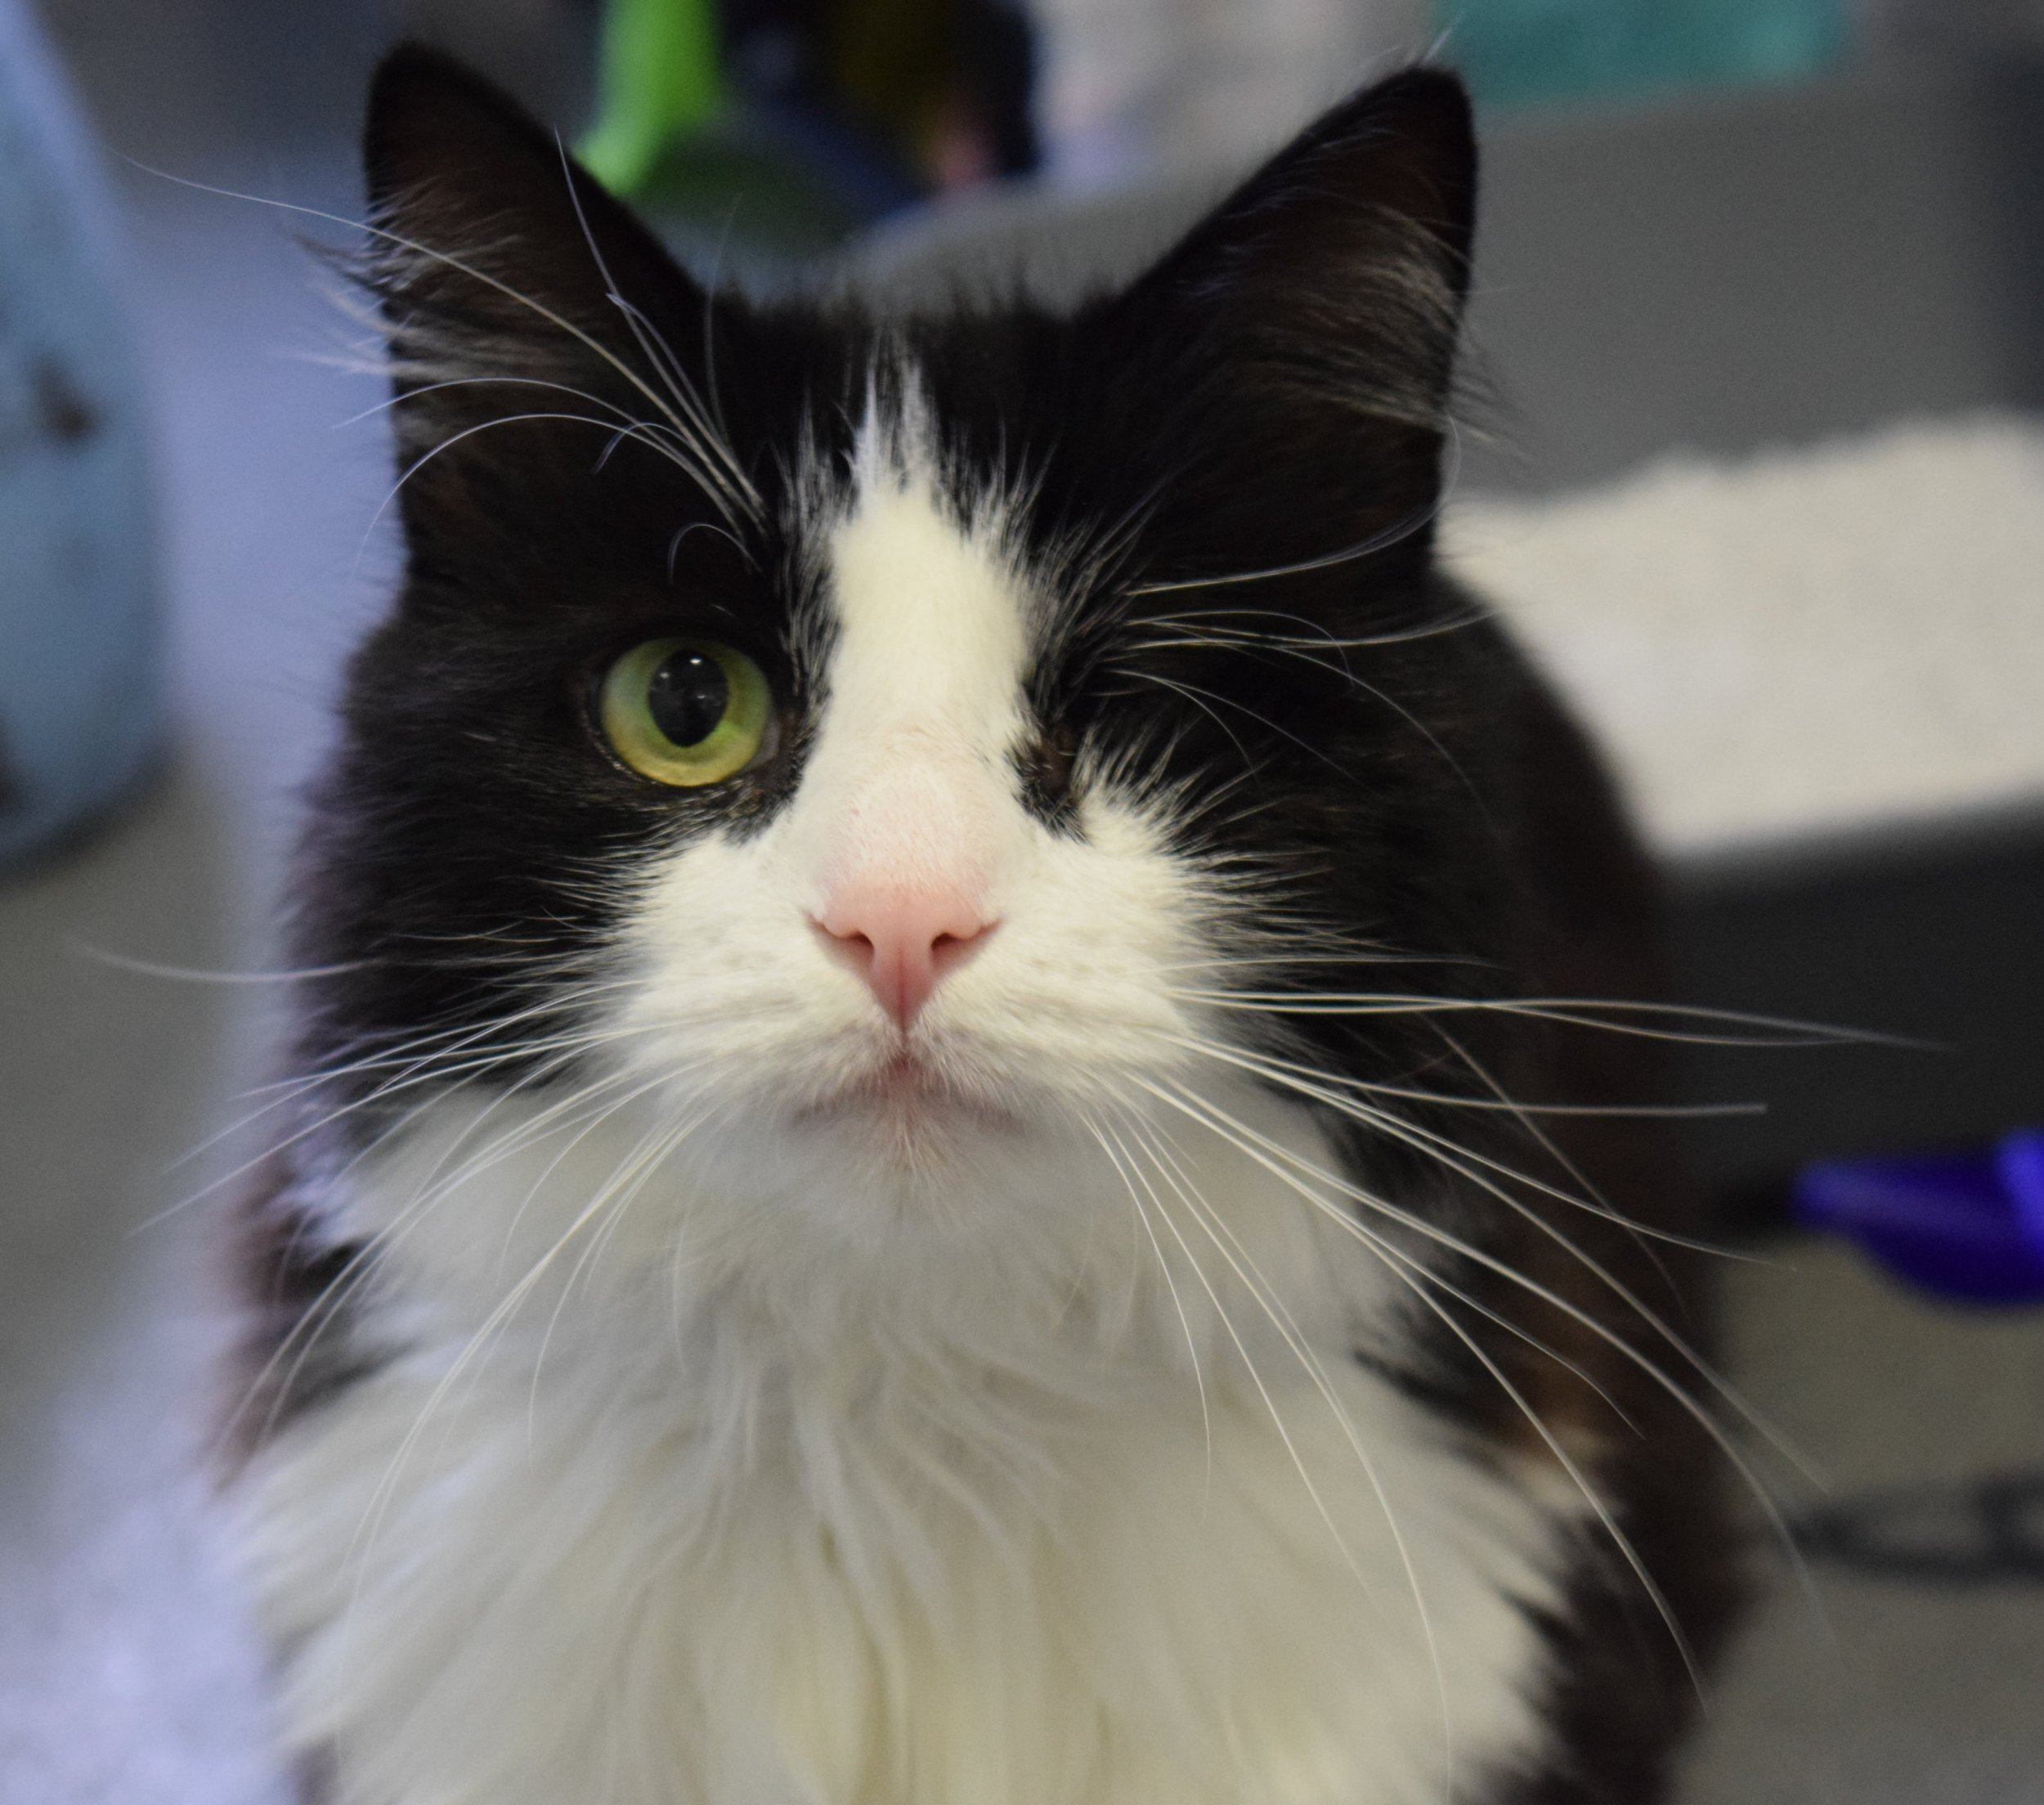 Battersea Dogs & Cats Home shares some of the most brilliantly named cats and dogs to come in to the shelter